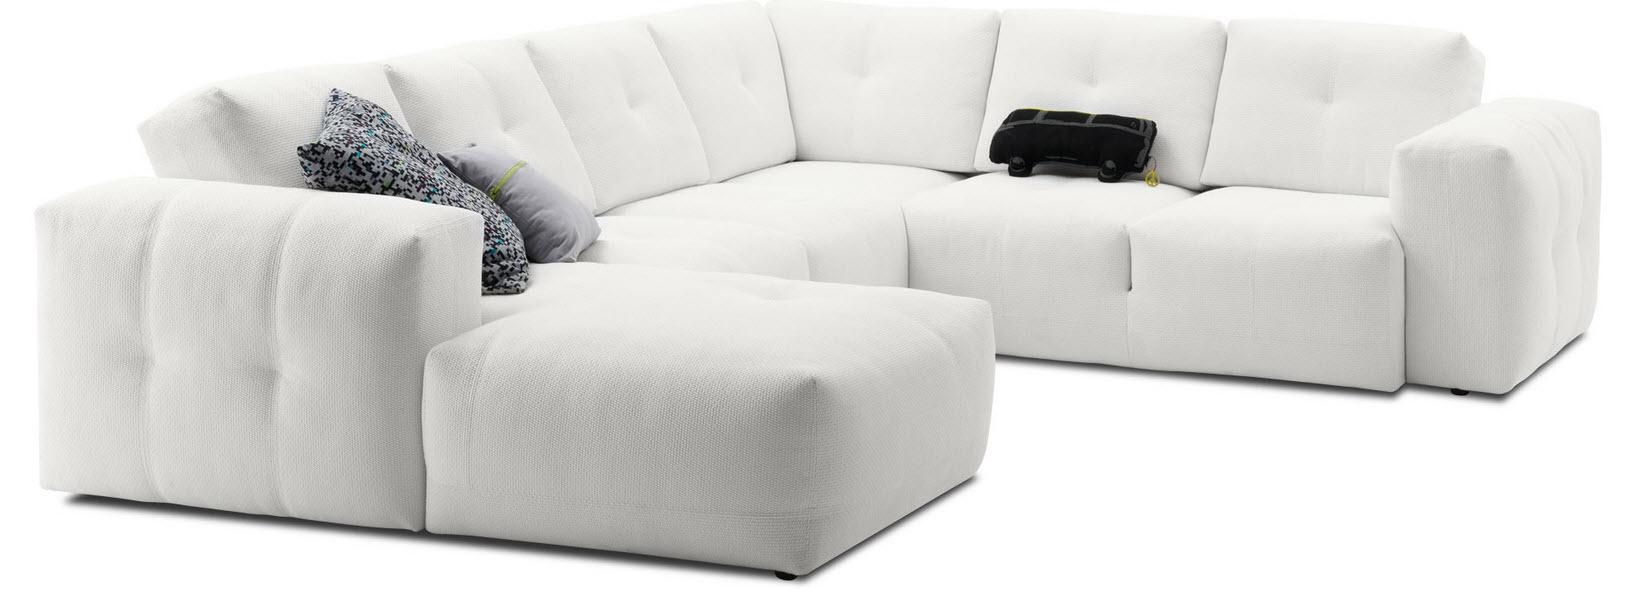 Game On With Our Majorly Modular Sofas | Boconcept Northwest Pertaining To Cloud Sectional Sofas (Image 10 of 20)